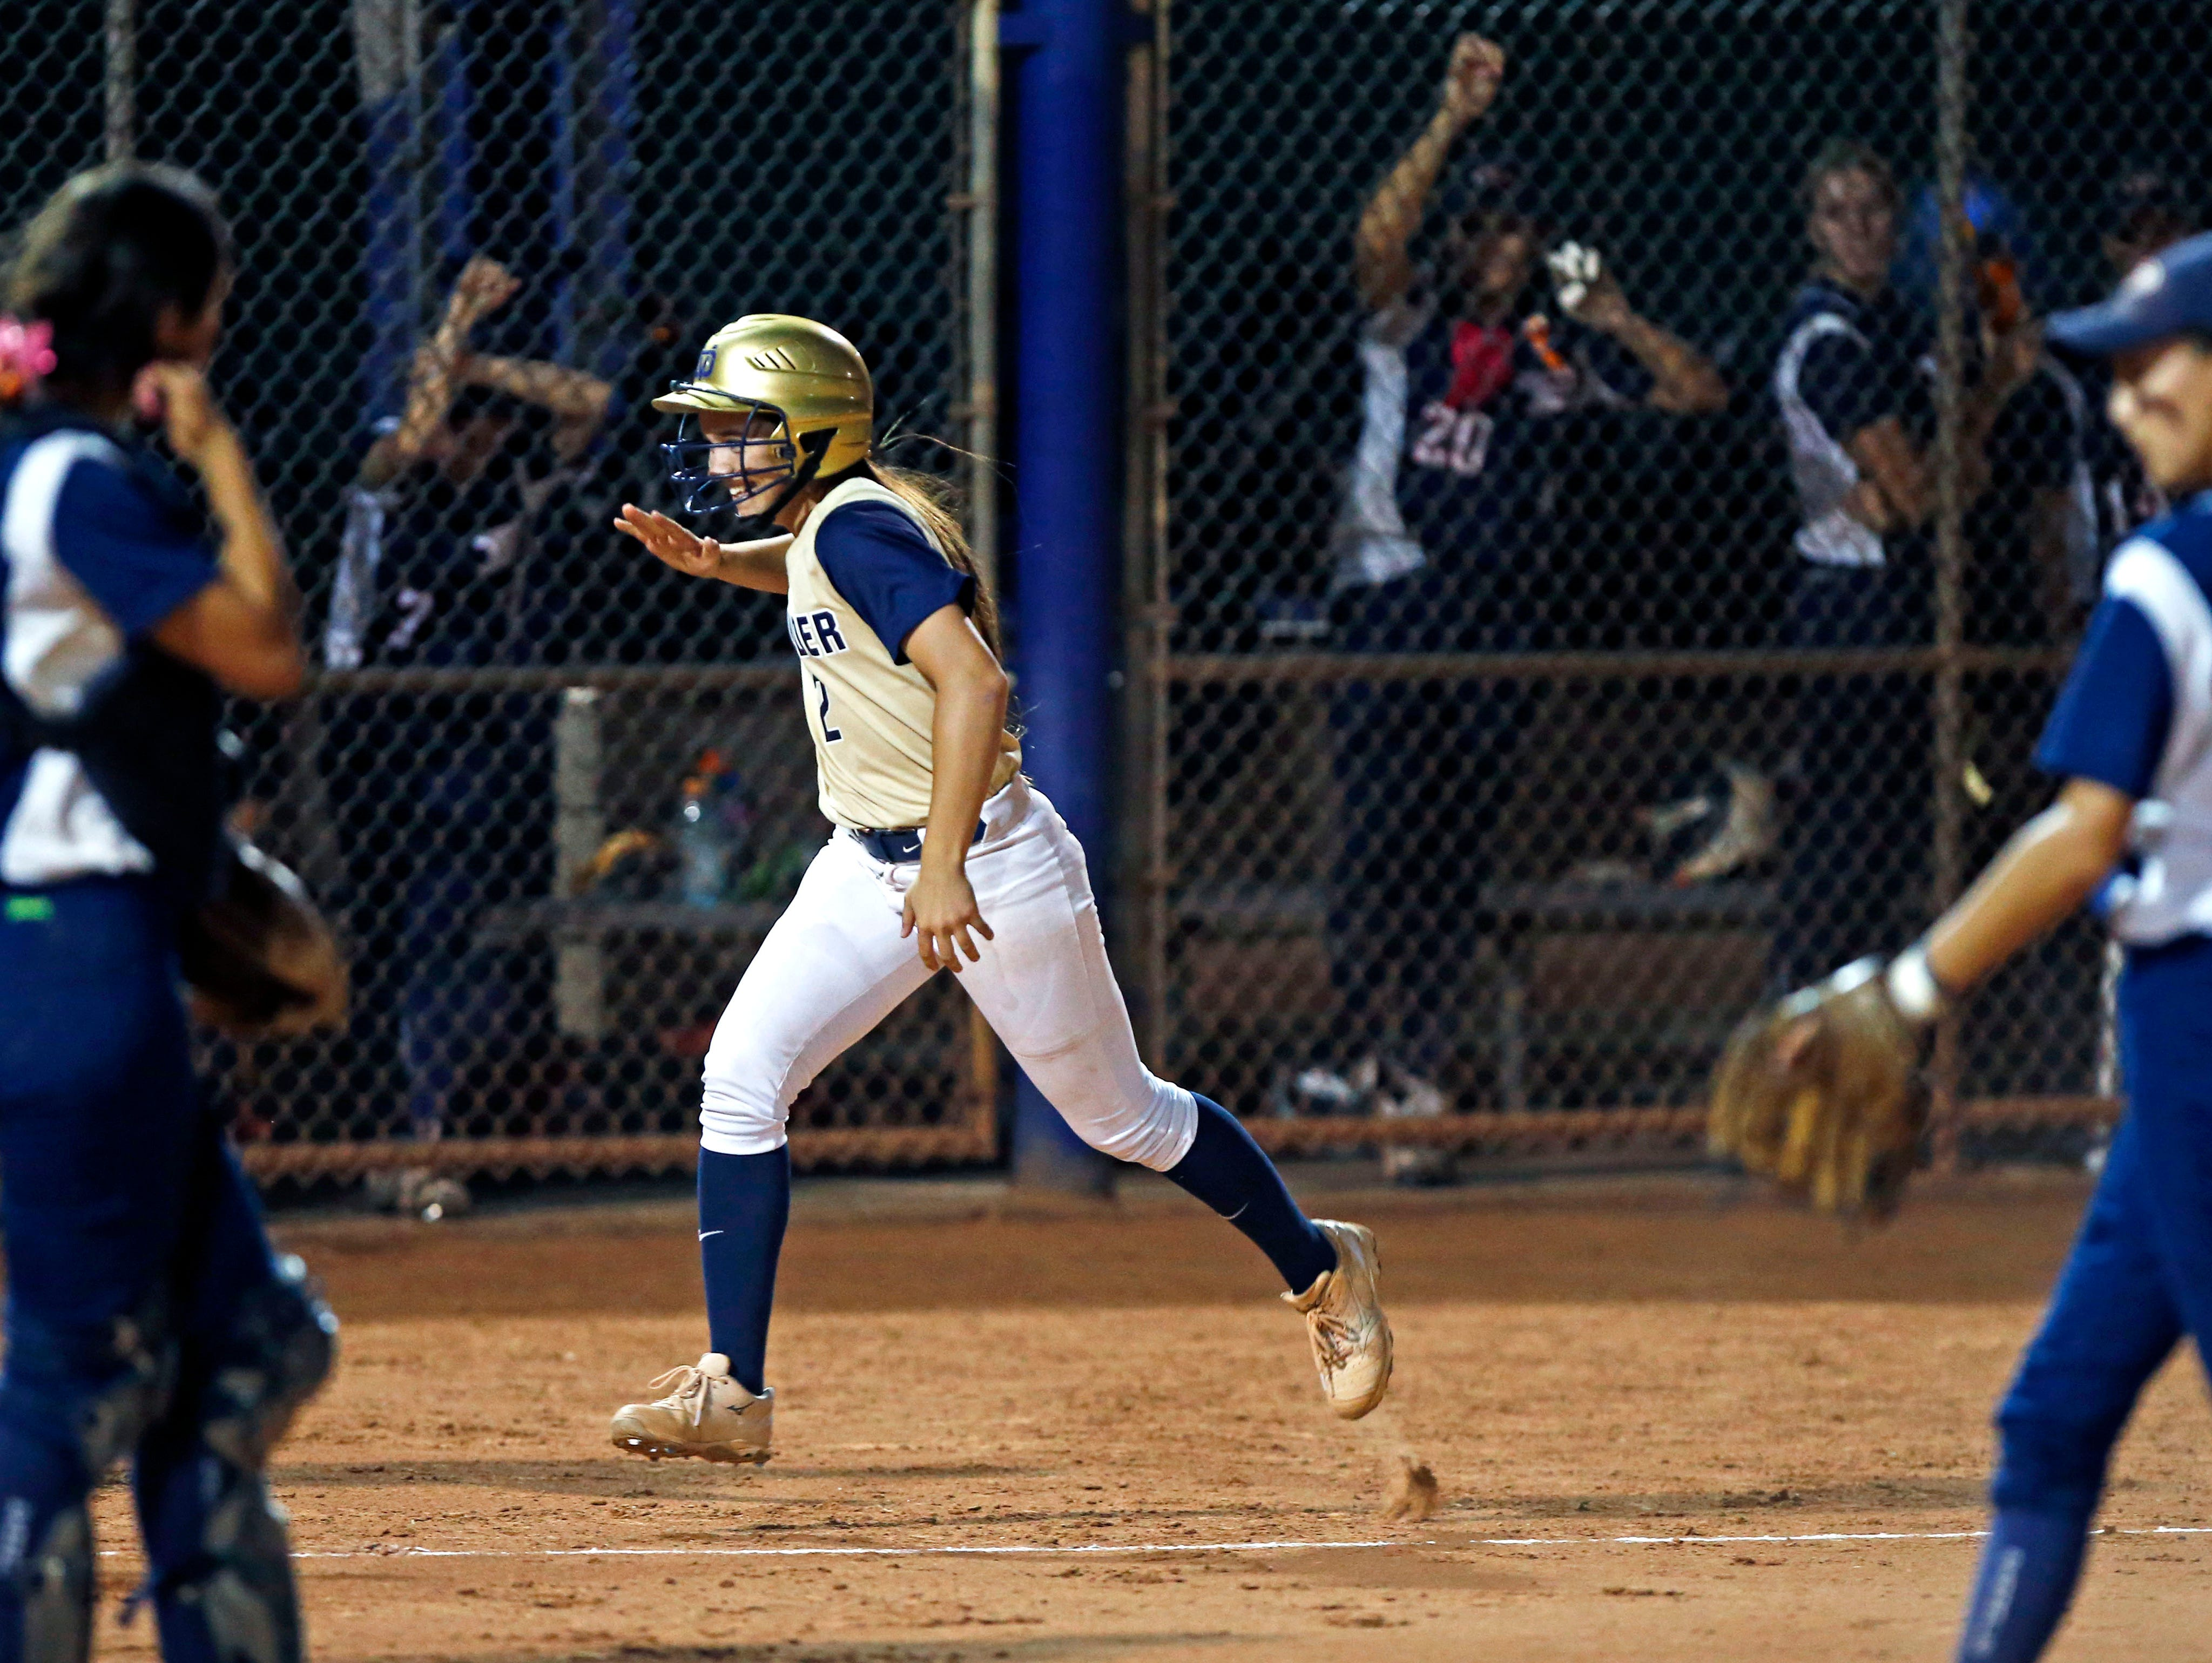 Rion Simms of Desert Vista heads for home after hitting a 3-run homer against Pinnacle in the sixth inning during the Division I state softball tournament on Wednesday, May 13, 2015, at Rose Mofford Sports Complex in Phoenix.